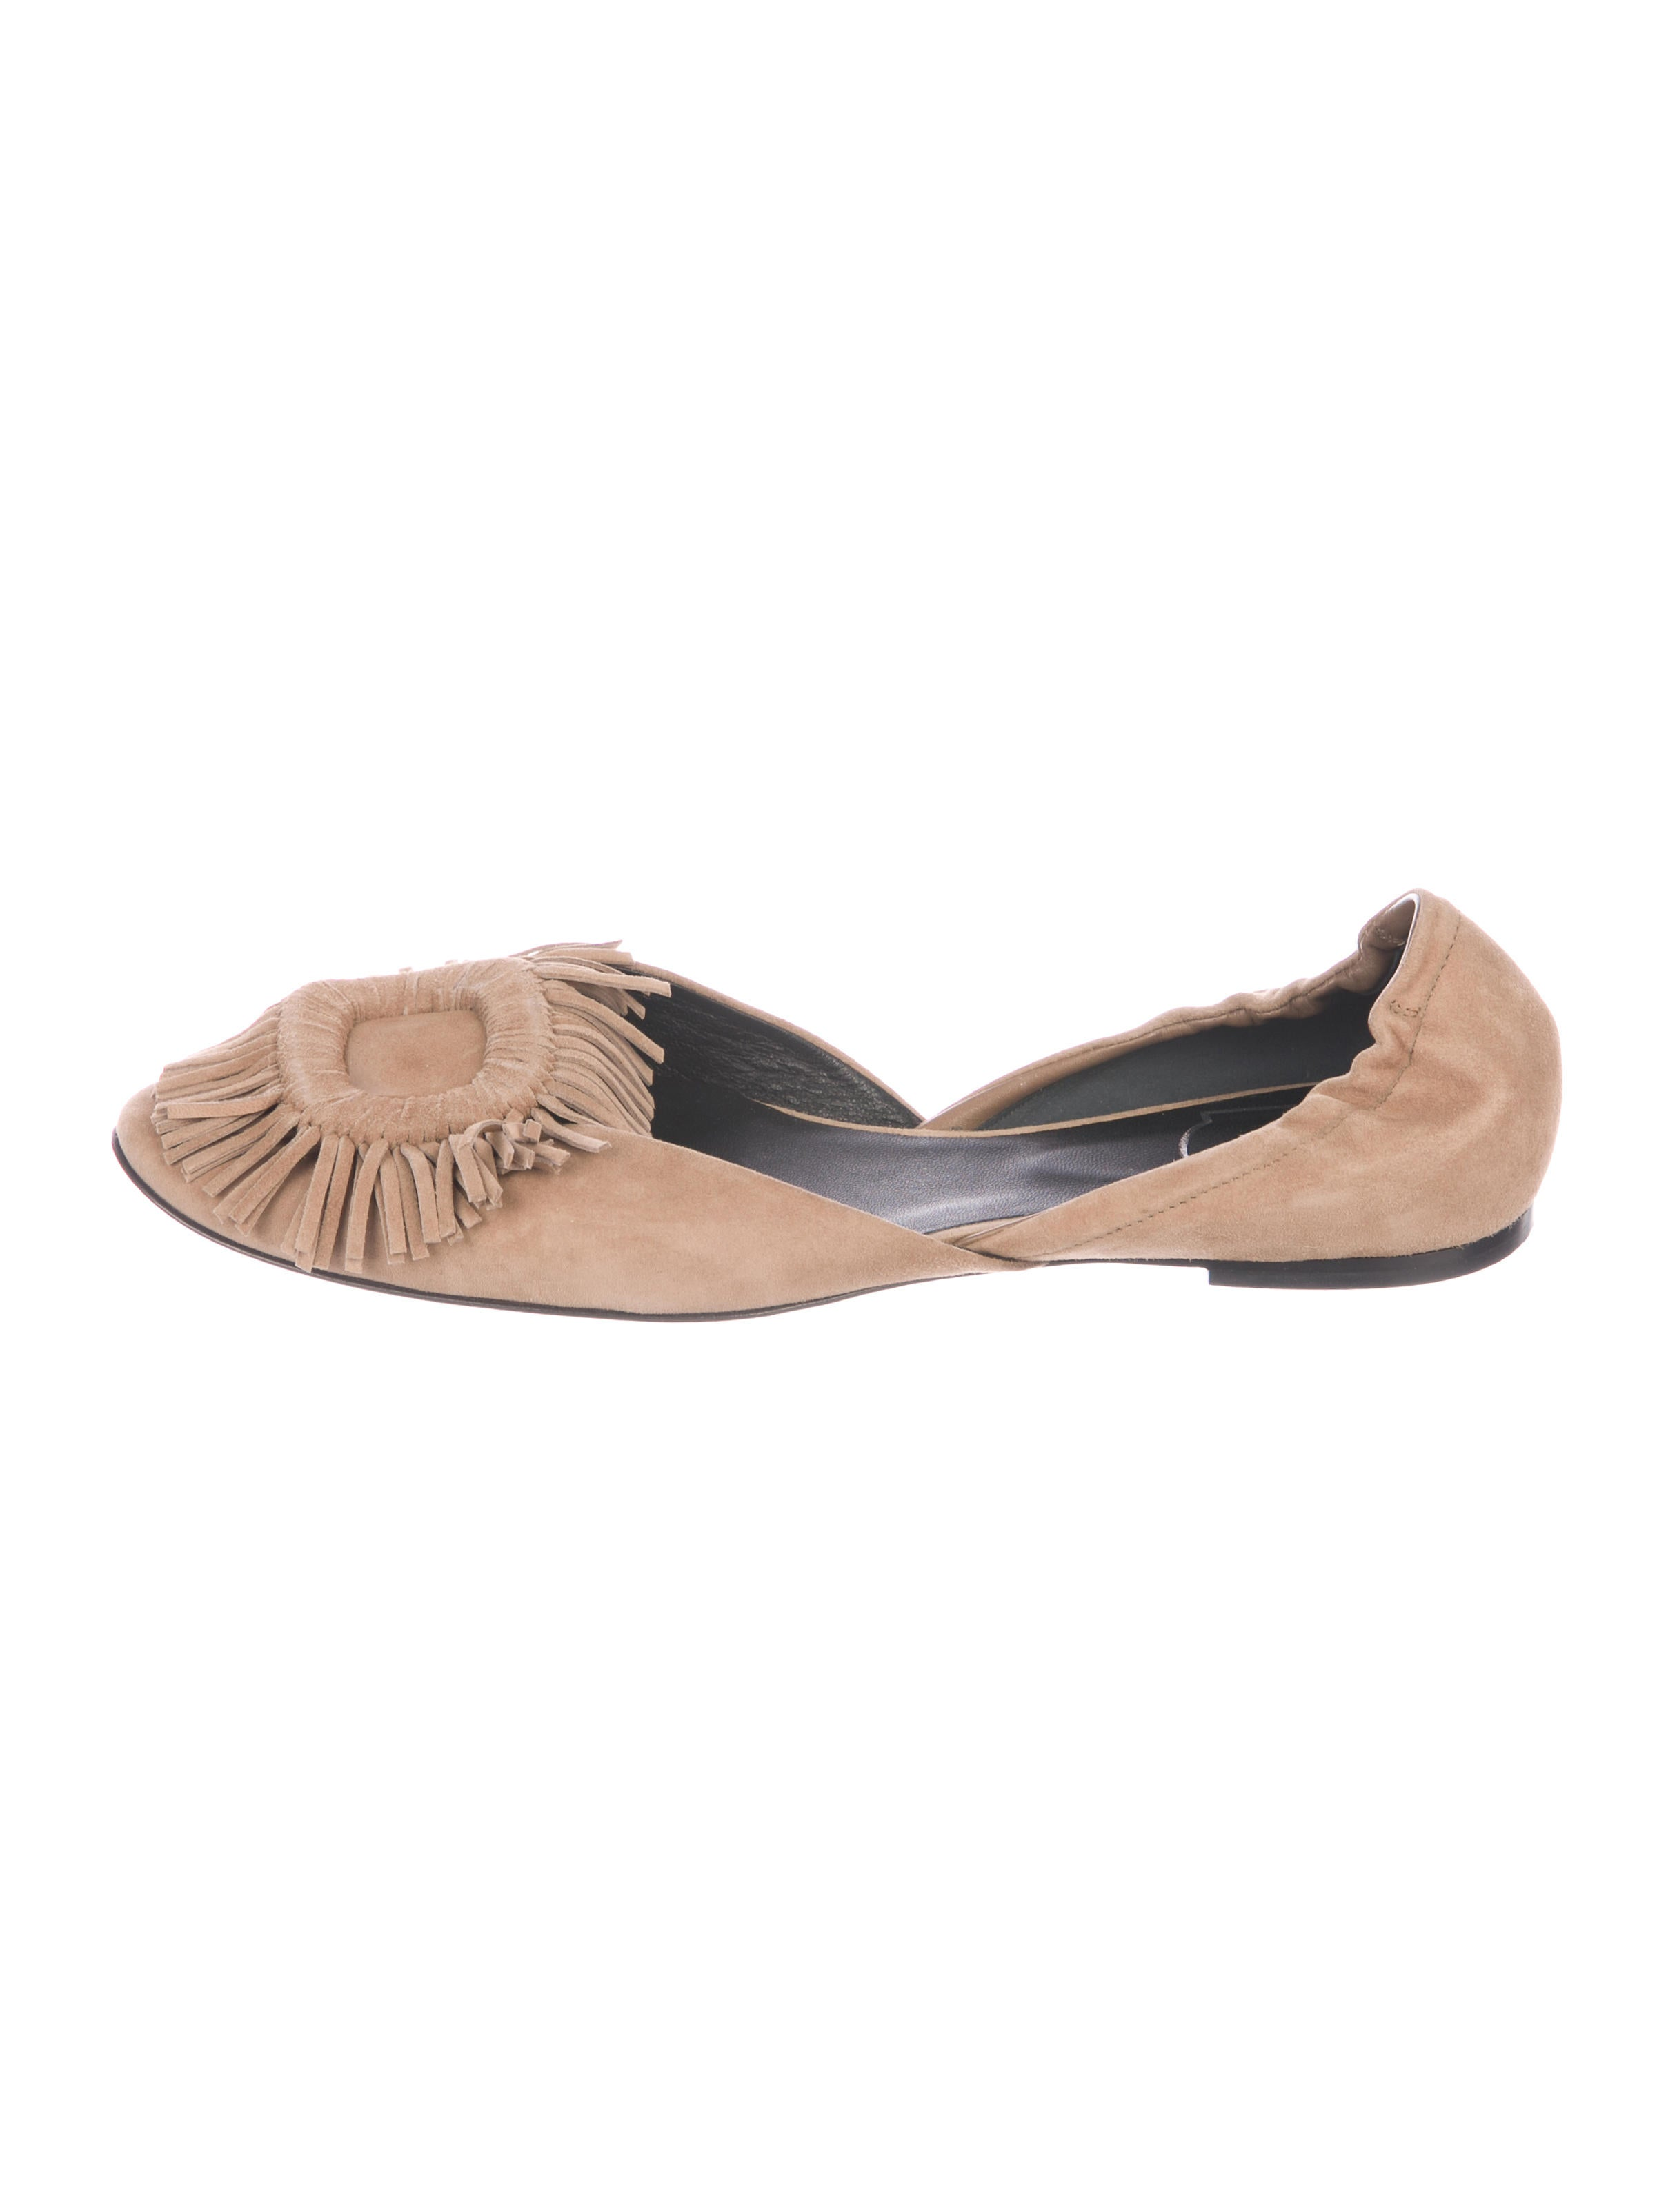 Roger Vivier Chips Fringed d'Orsay Flats deals cheap online discount authentic buy cheap nicekicks zqrZGg1t